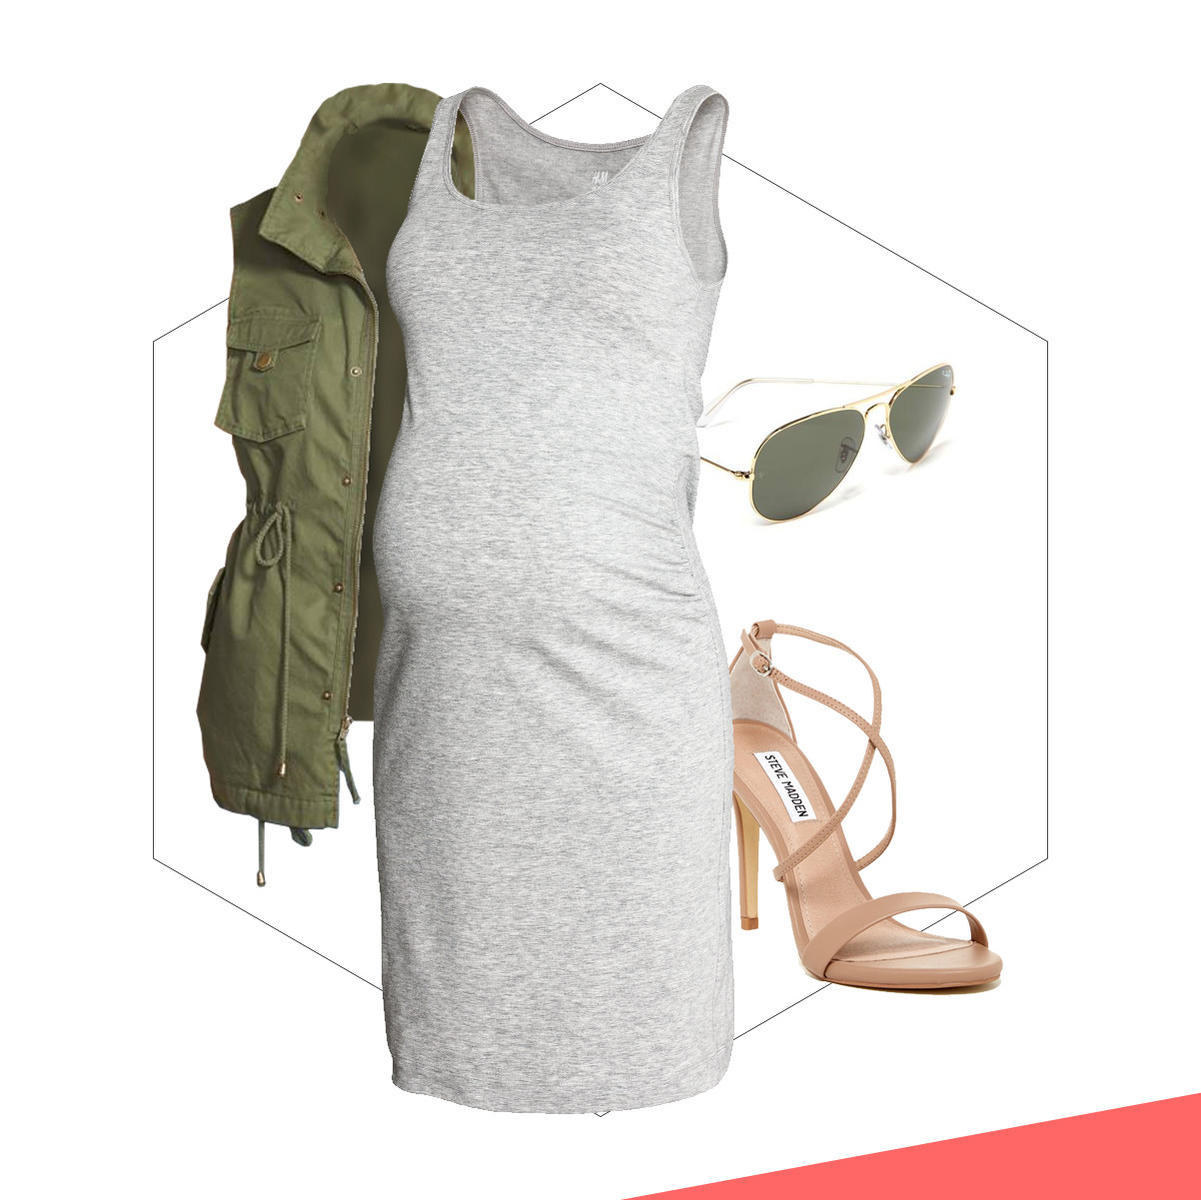 A body con dress with nude heels and an army green jacket